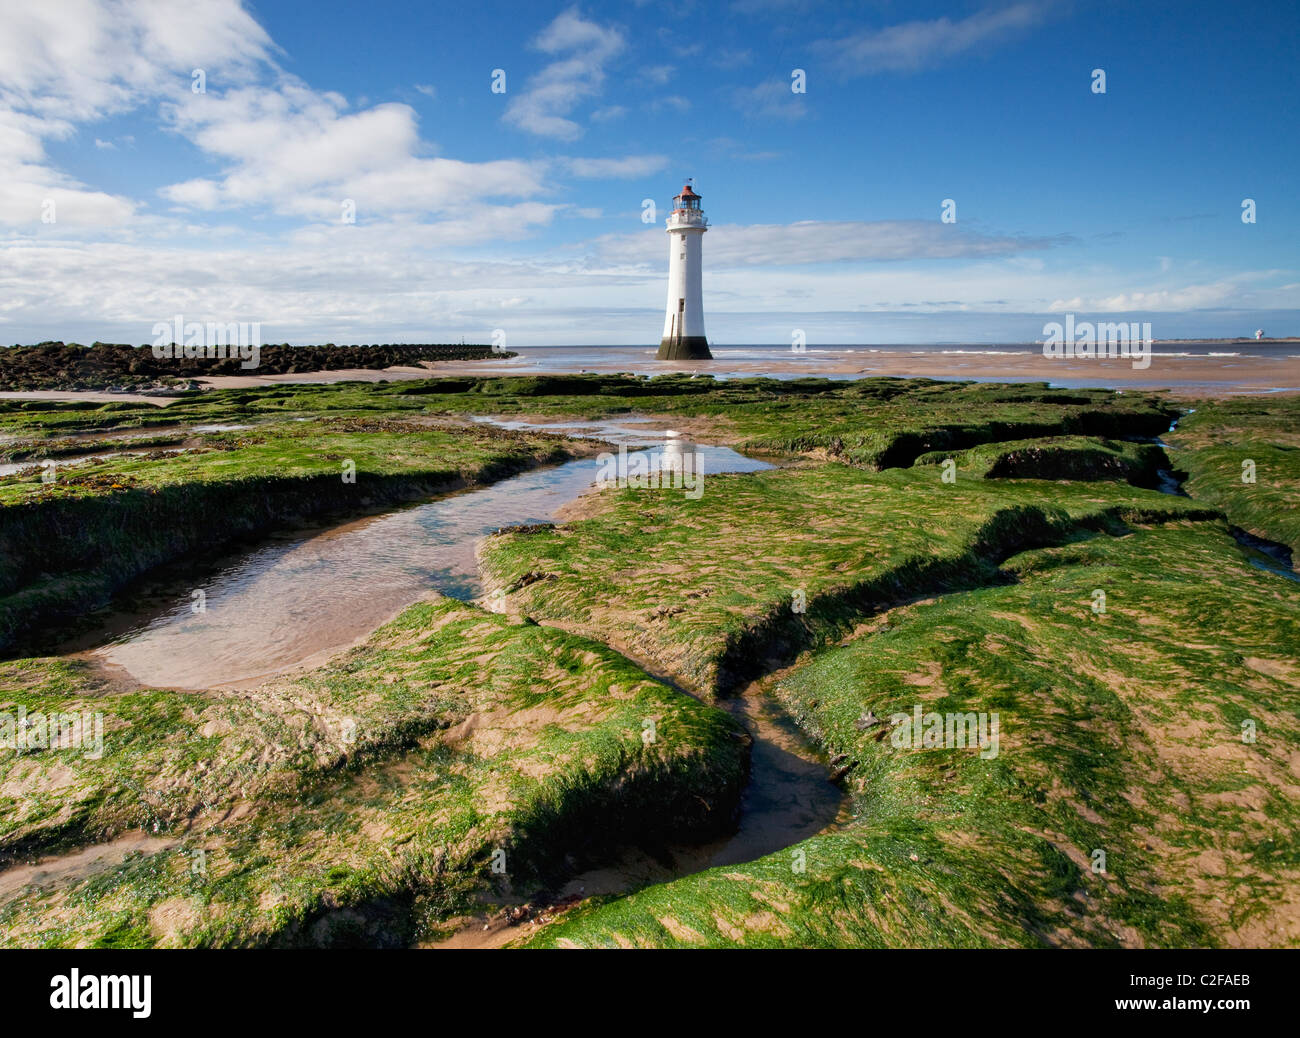 Fort Perch Rock lighthouse at New Brighton, Wirral, UK - Stock Image